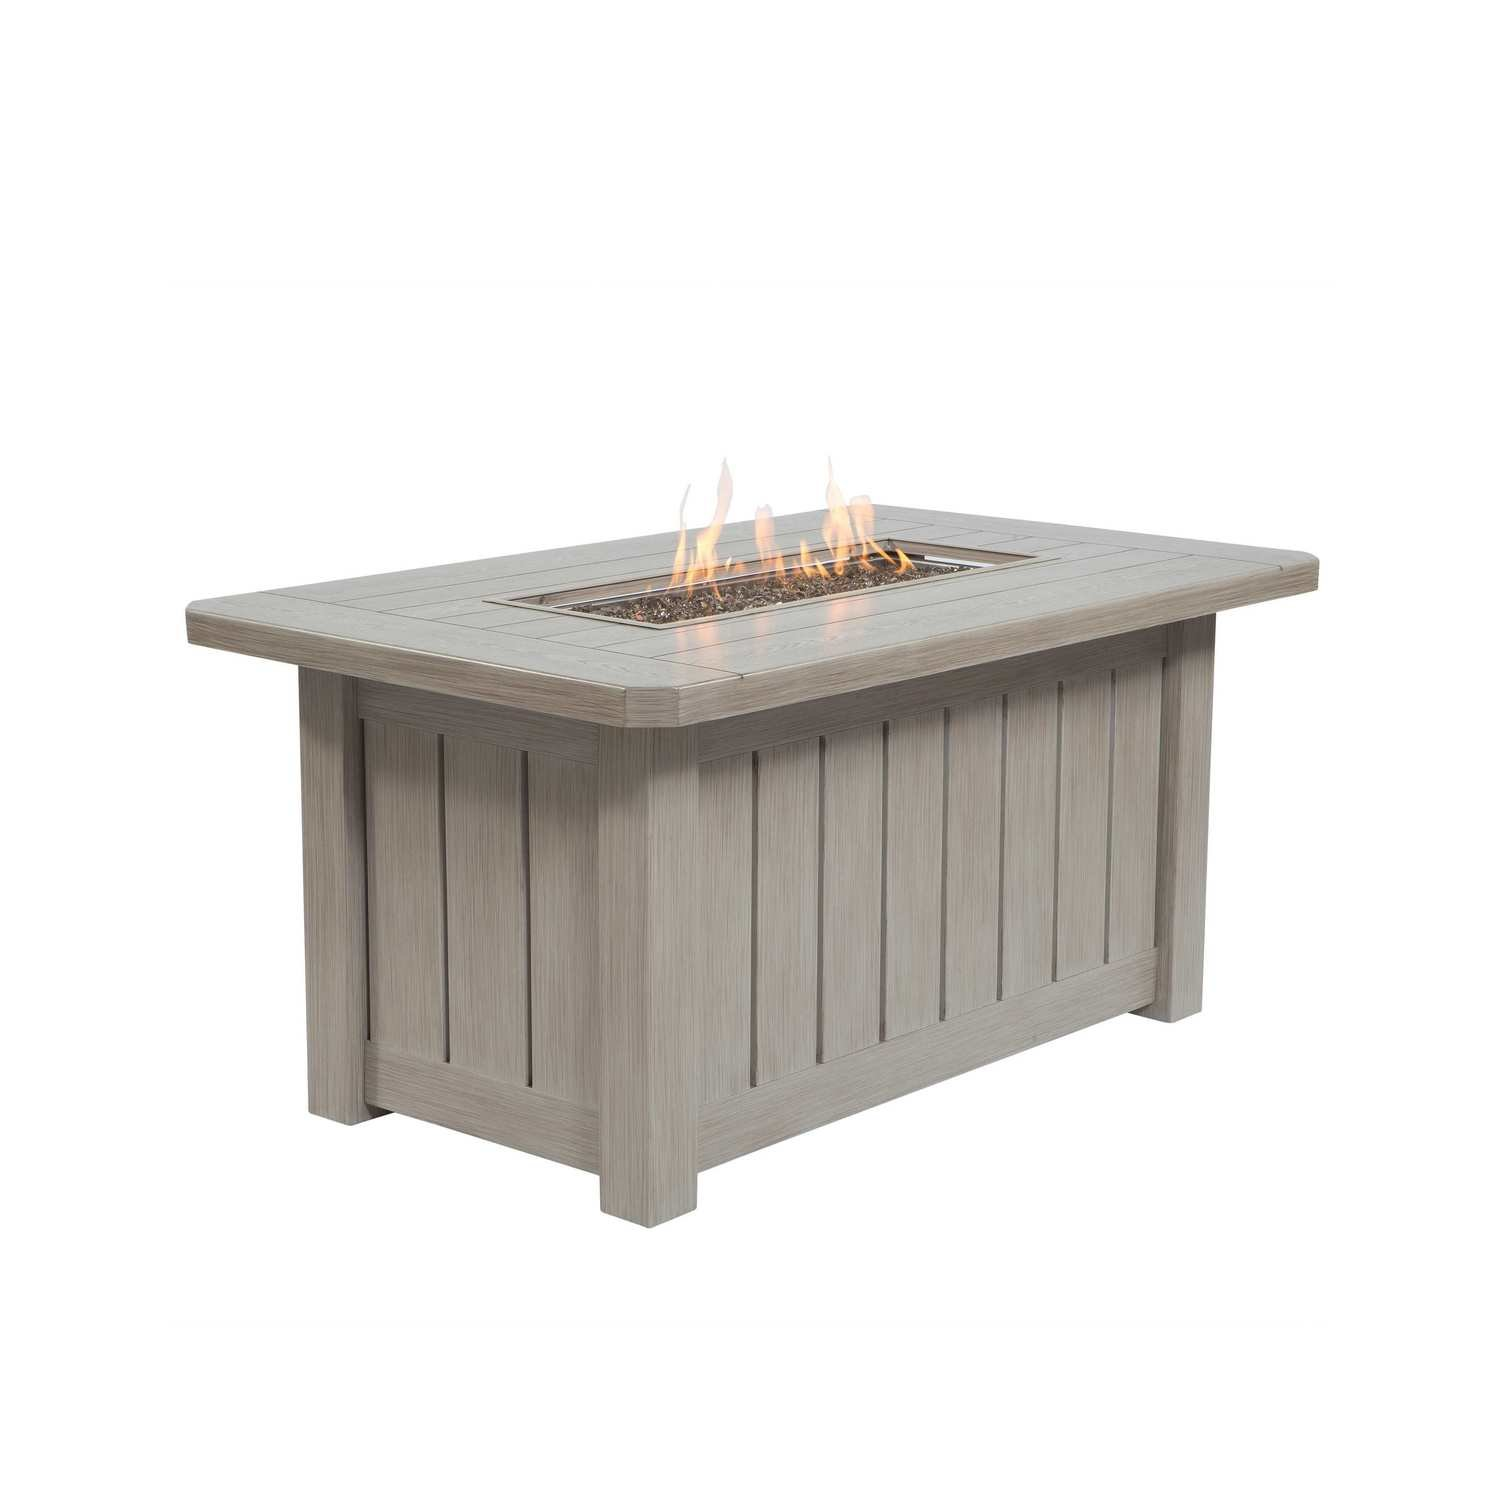 Aluminum Rectangular Fire Pit Table - Weathered